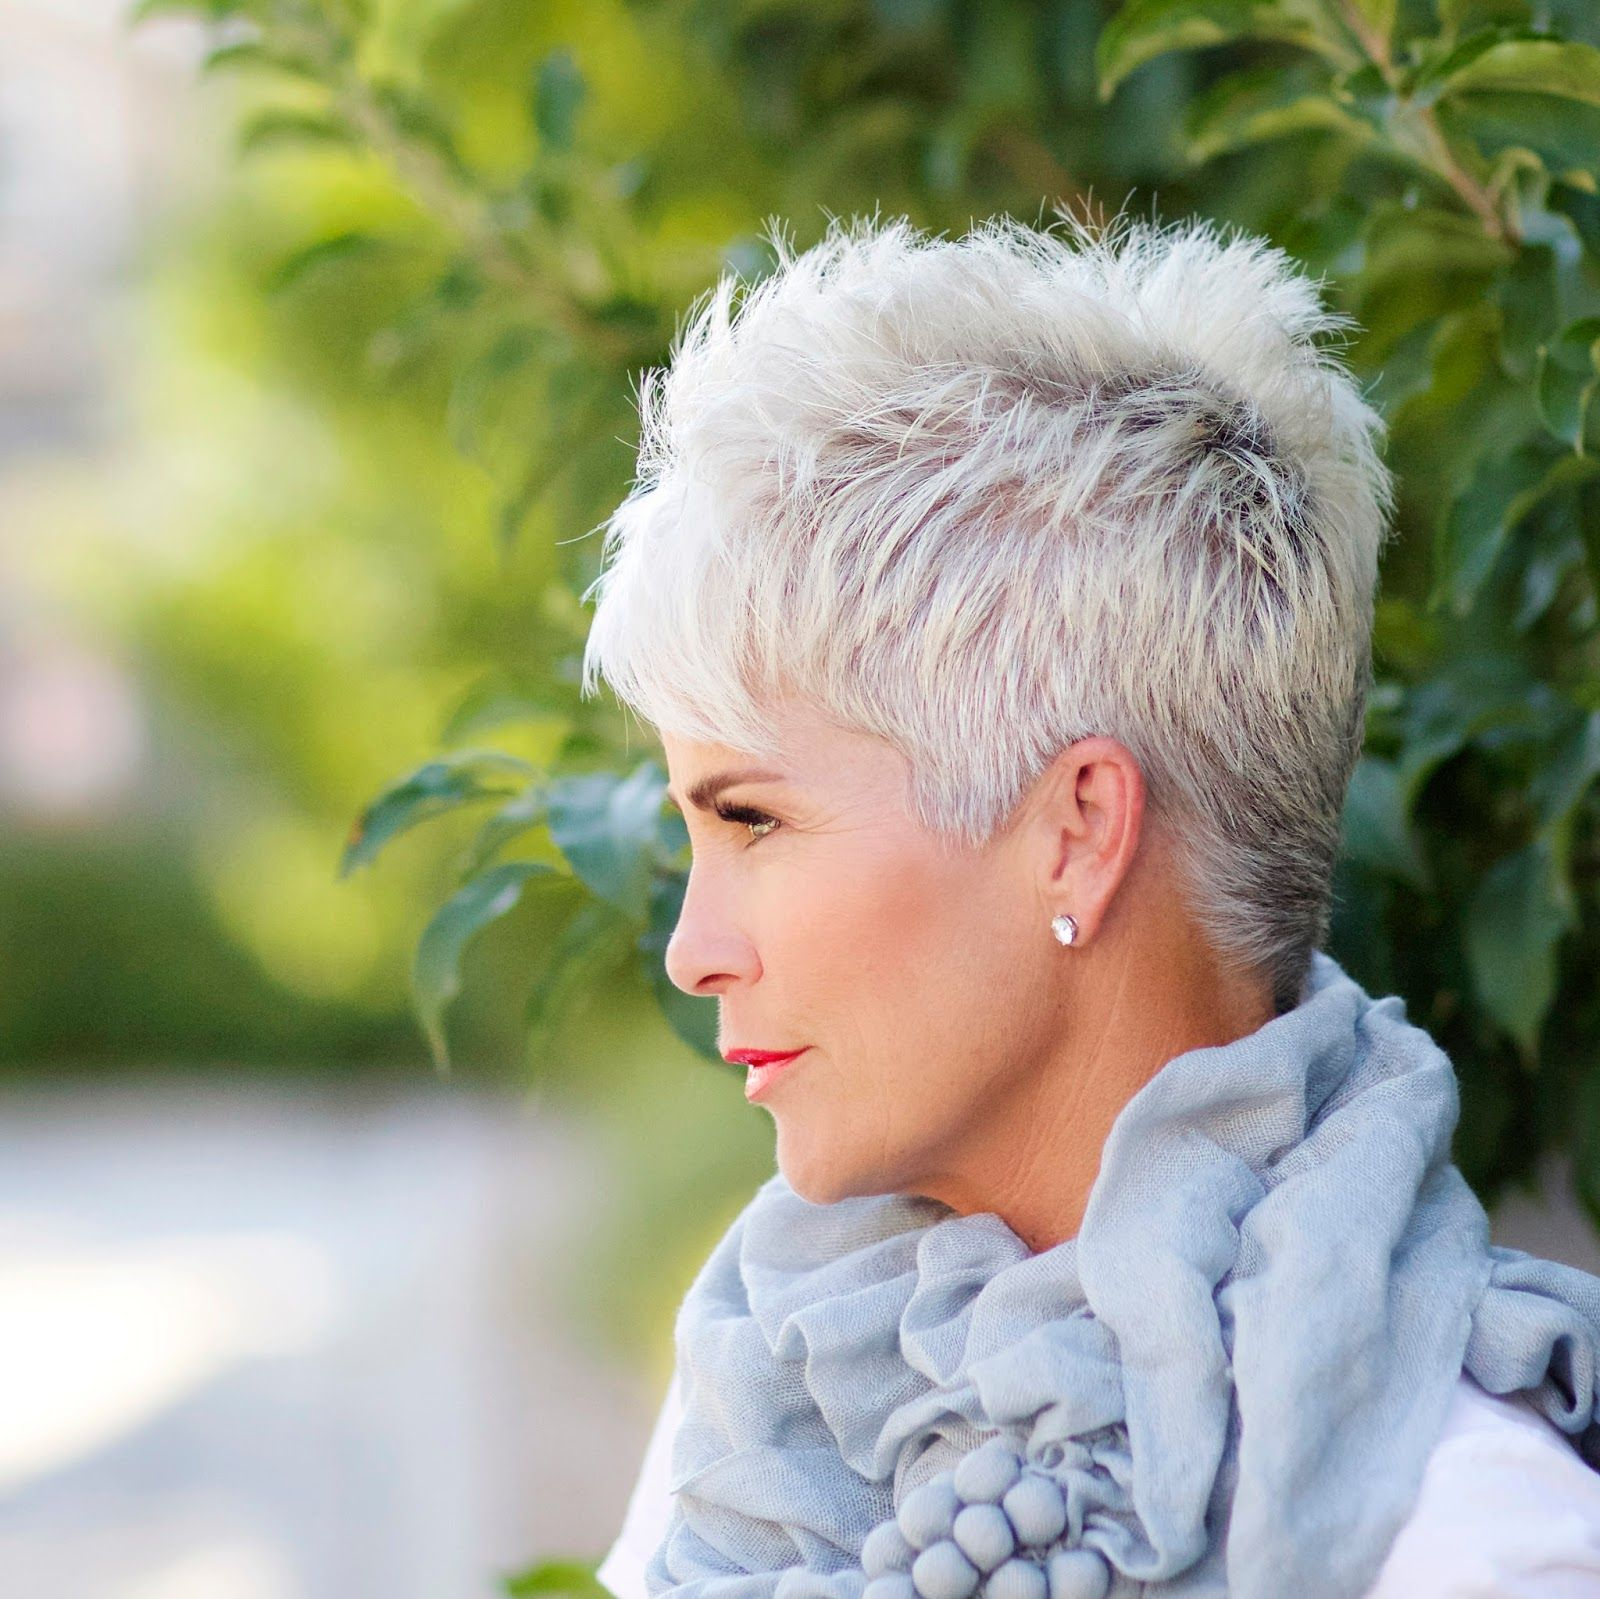 chic over 50 | hair and beauty | pinterest | over 50, chic and 50th